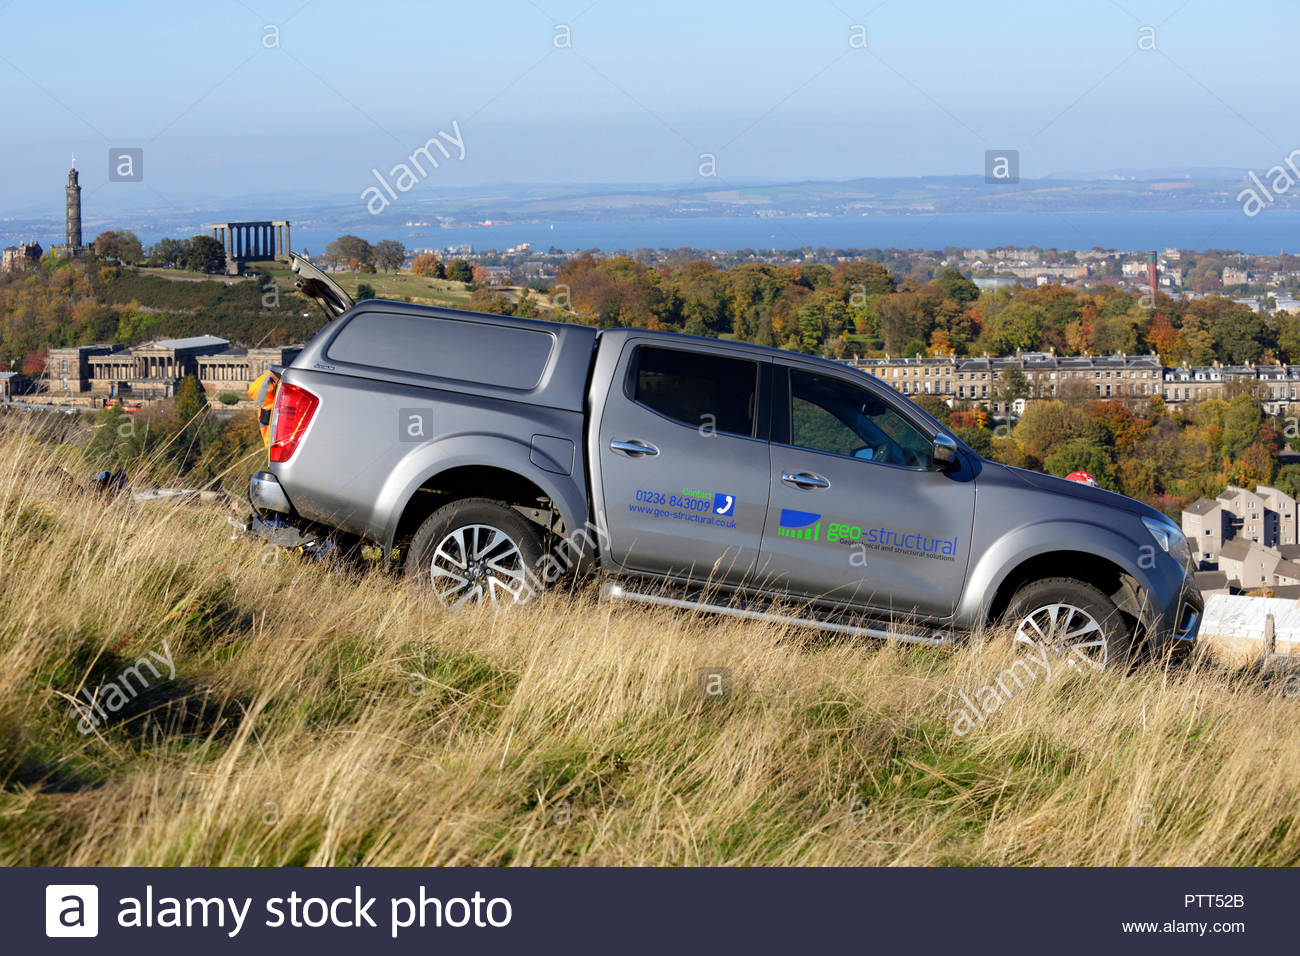 Edinburgh, United Kingdom. 10th October, 2018. Geo-Structural Geotechnical and Structural solutions car parked above Salisbury Crags on Arthurs seat on a clear sunny day. Calton Hill visible. Credit: Craig Brown/Alamy Live News. - Stock Image